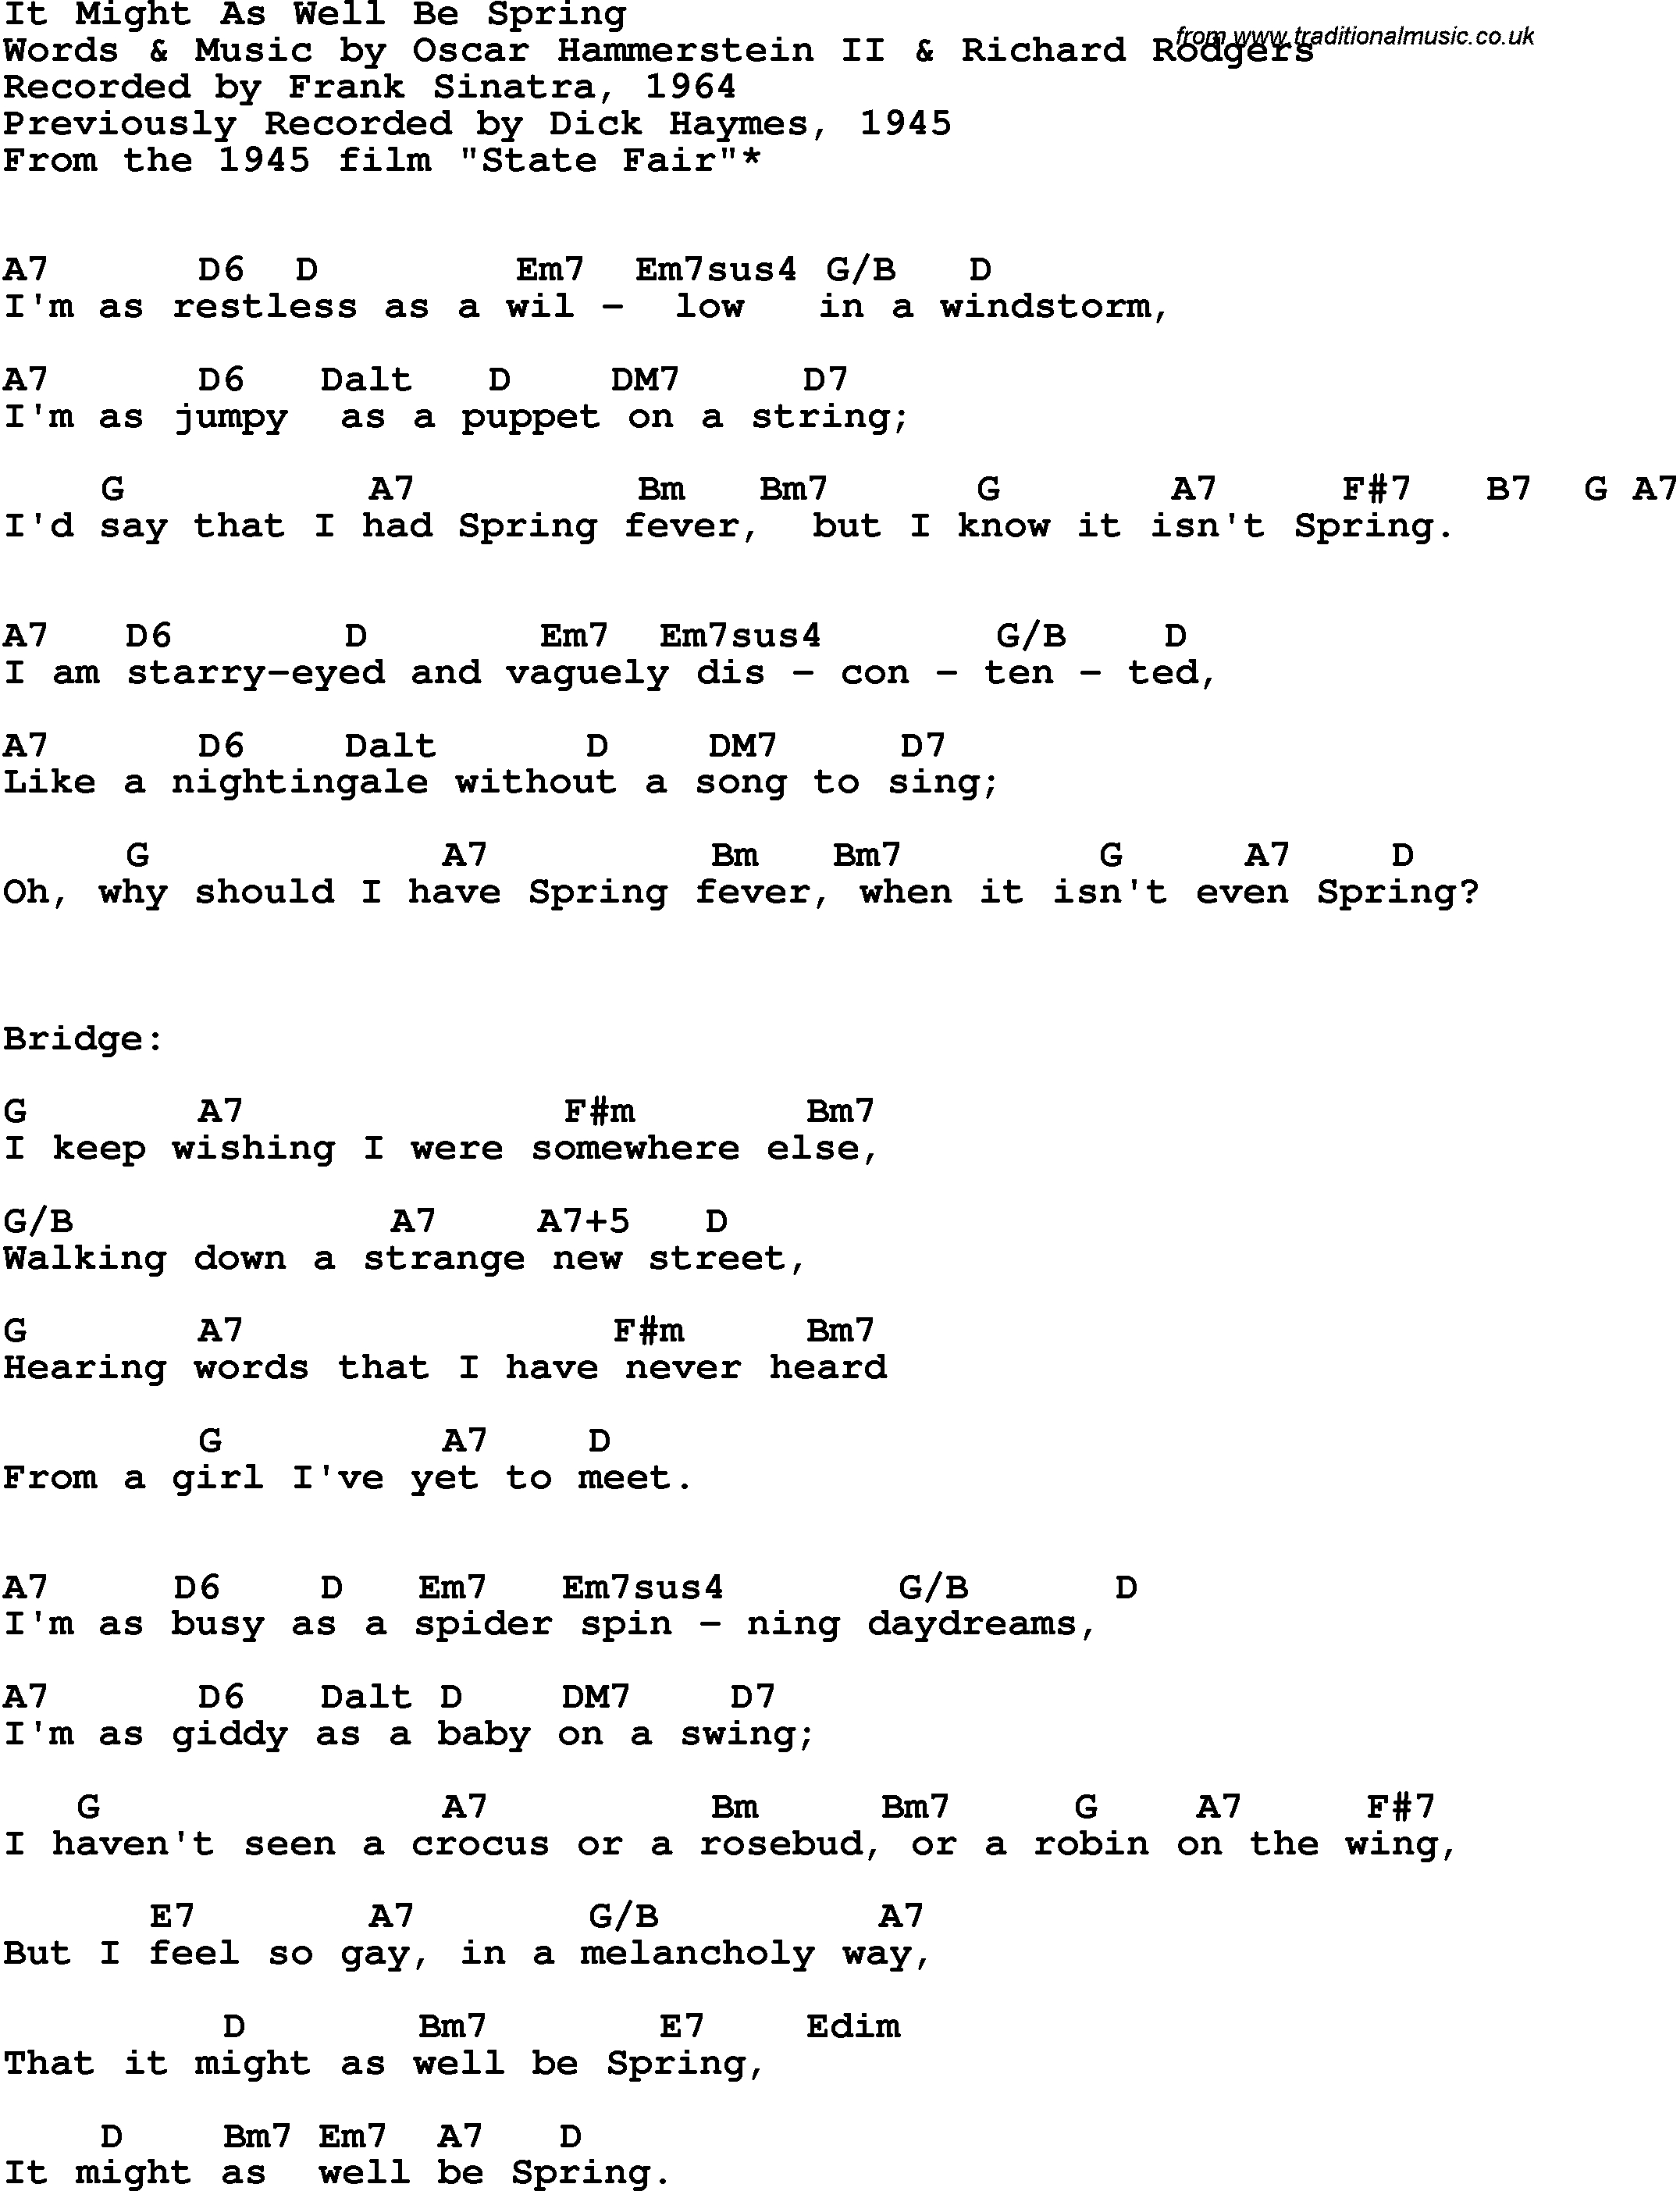 It Is Well Chords Song Lyrics With Guitar Chords For It Might As Well Be Spring